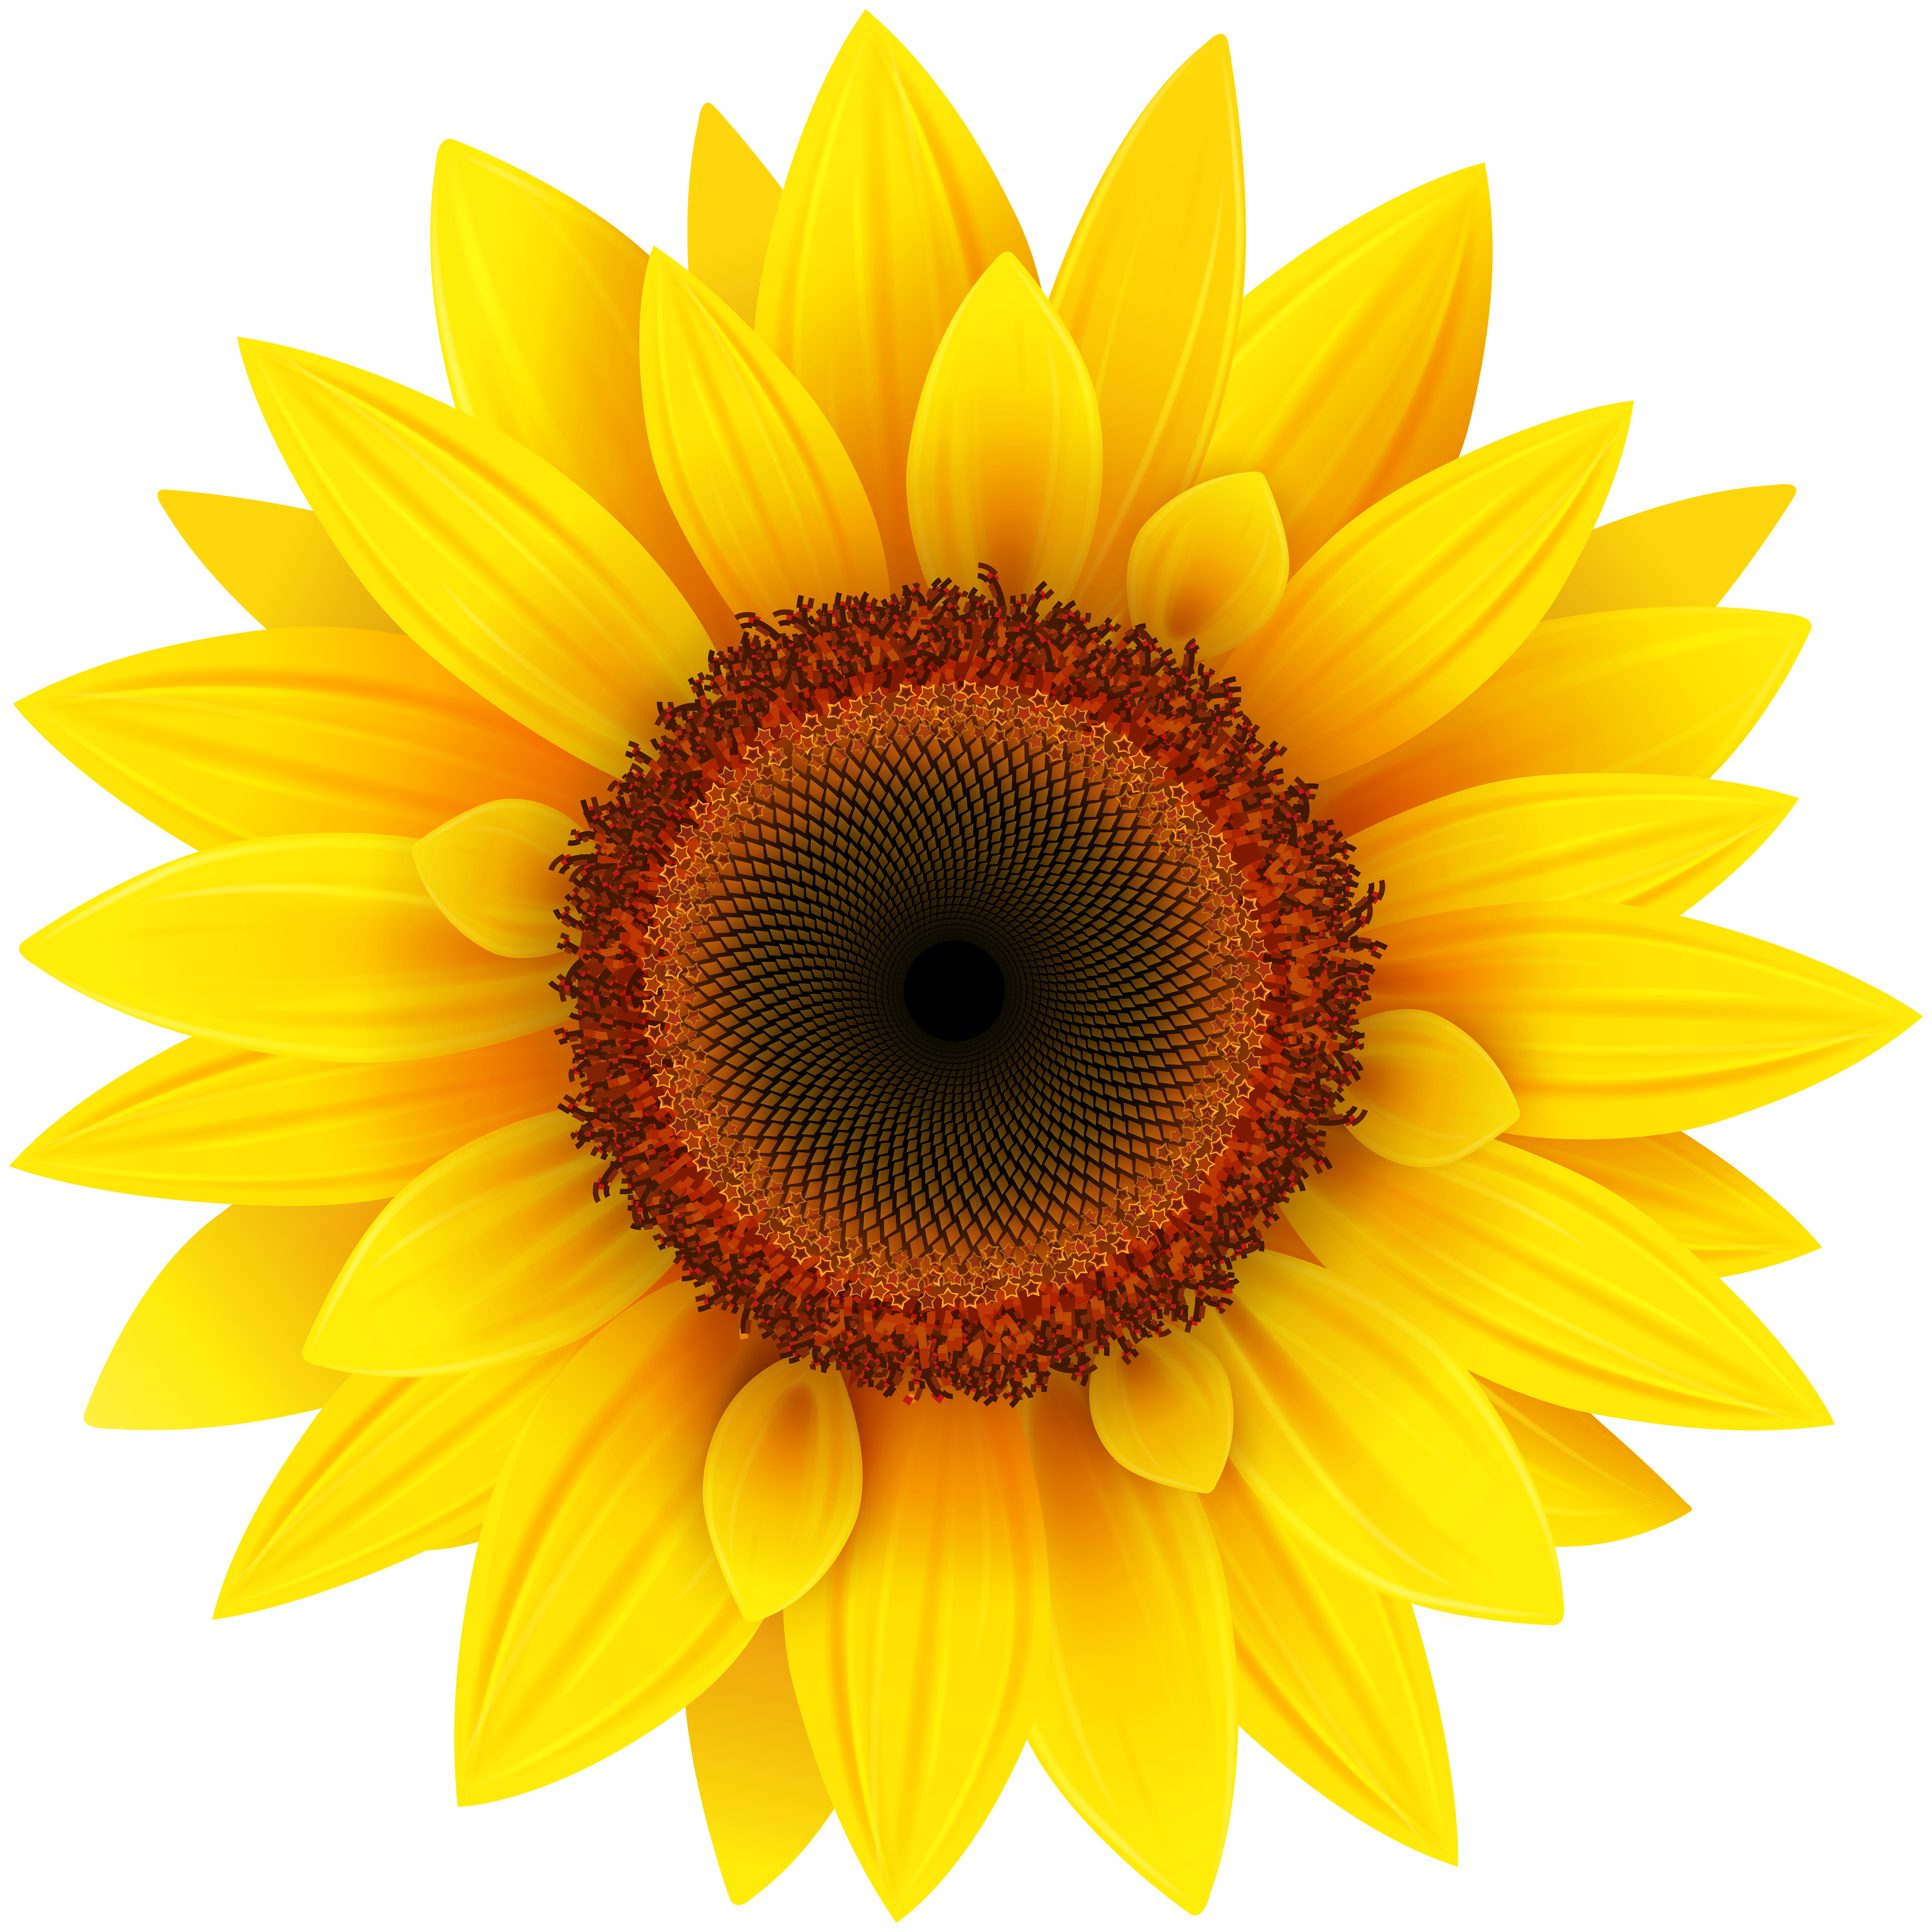 Png picture gallery yopriceville. Ladybugs clipart sunflower